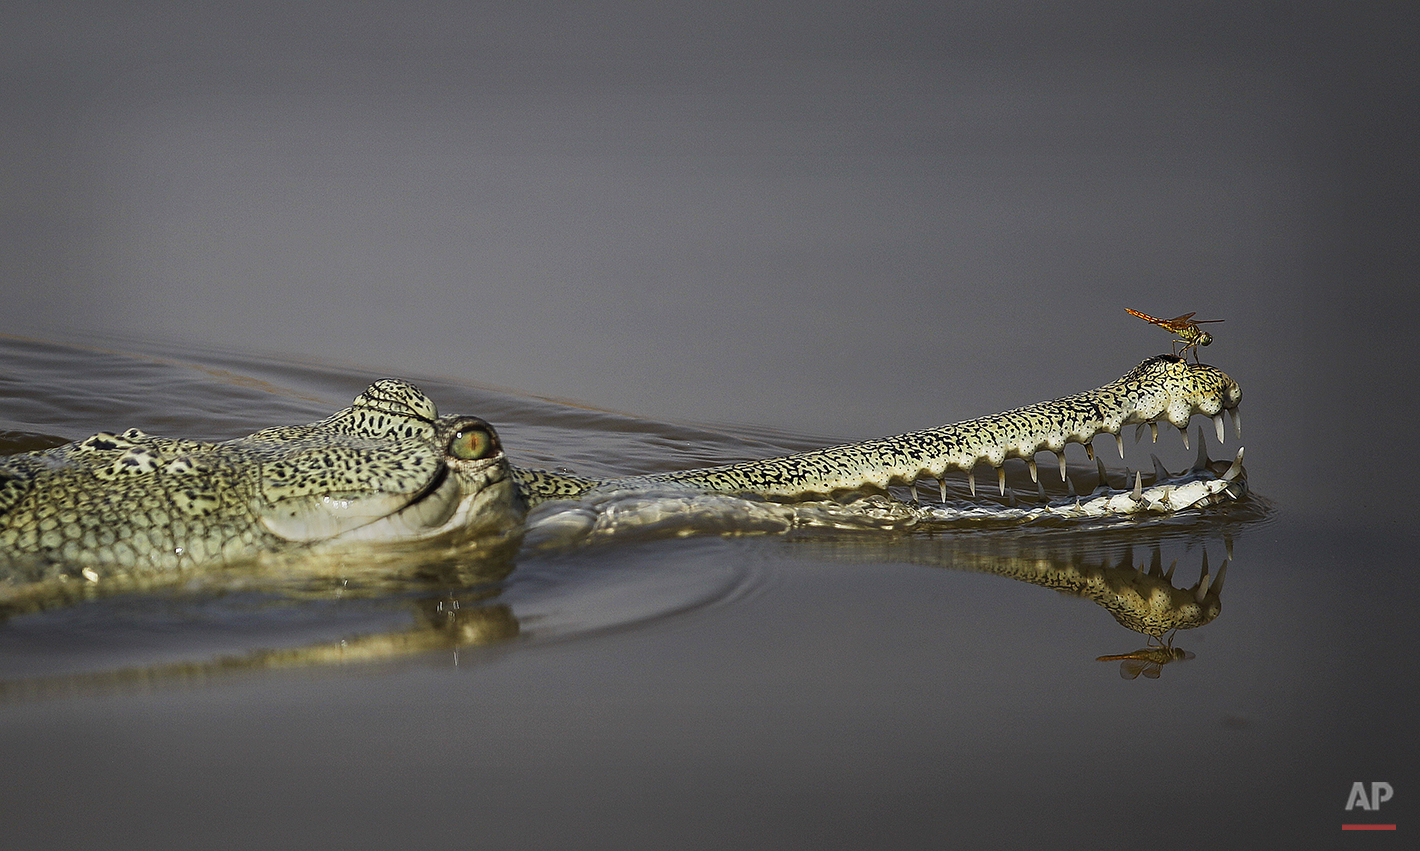 In this photo taken Wednesday, April 30, 2014, a dragonfly sits on the nose of a Gharial, rare crocodile-like creatures, in the River Chambal near Bhopepura village in the northern Indian state of Uttar Pradesh. The narrow 250-mile stretch of the Chambal is a place of crocodiles and jackals, of river dolphins and the occasional wolf. Hundreds of species of birds, storks, geese, babblers, larks, falcons and so many more, nest along the river. Endangered birds lay small speckled eggs in tiny pits they dig in the sandbars. Gharials, rare crocodile-like creatures that look like they swaggered out of the Mesozoic Era, are commonplace here and nowhere else. (AP Photo/Altaf Qadri)